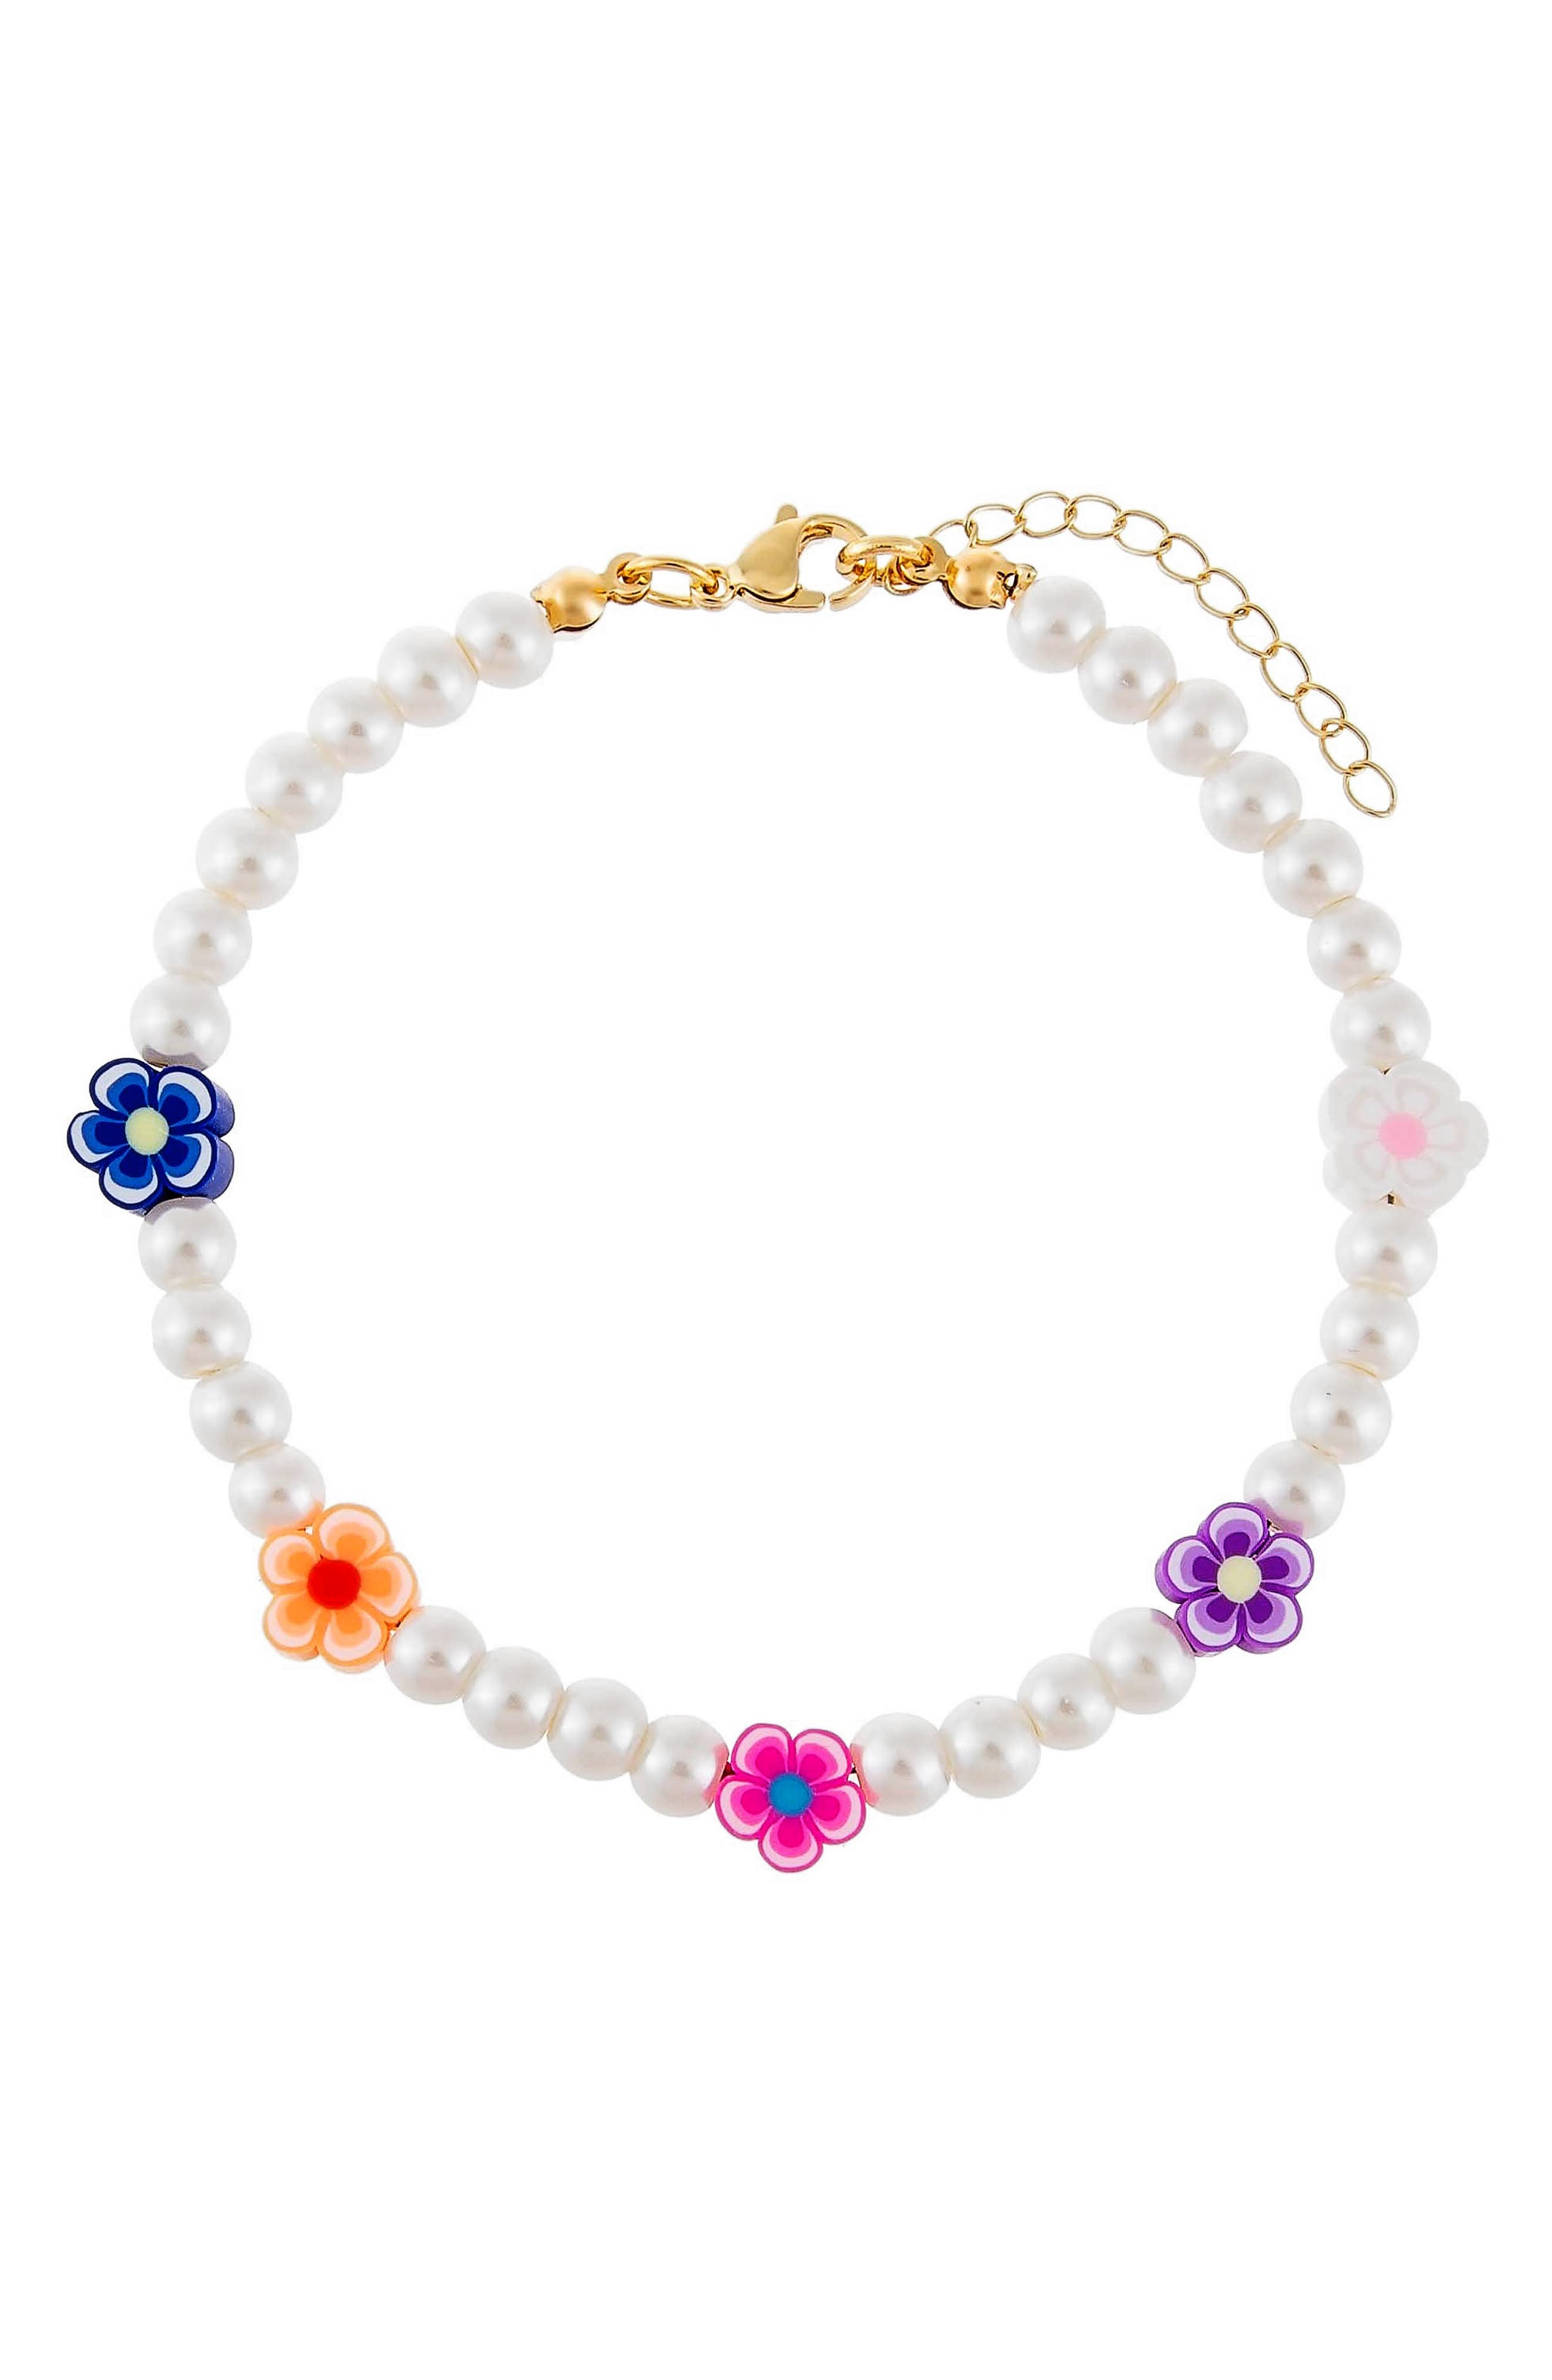 Women's Adina's Jewels Neon Color Flower & Imitation Pearl Anklet